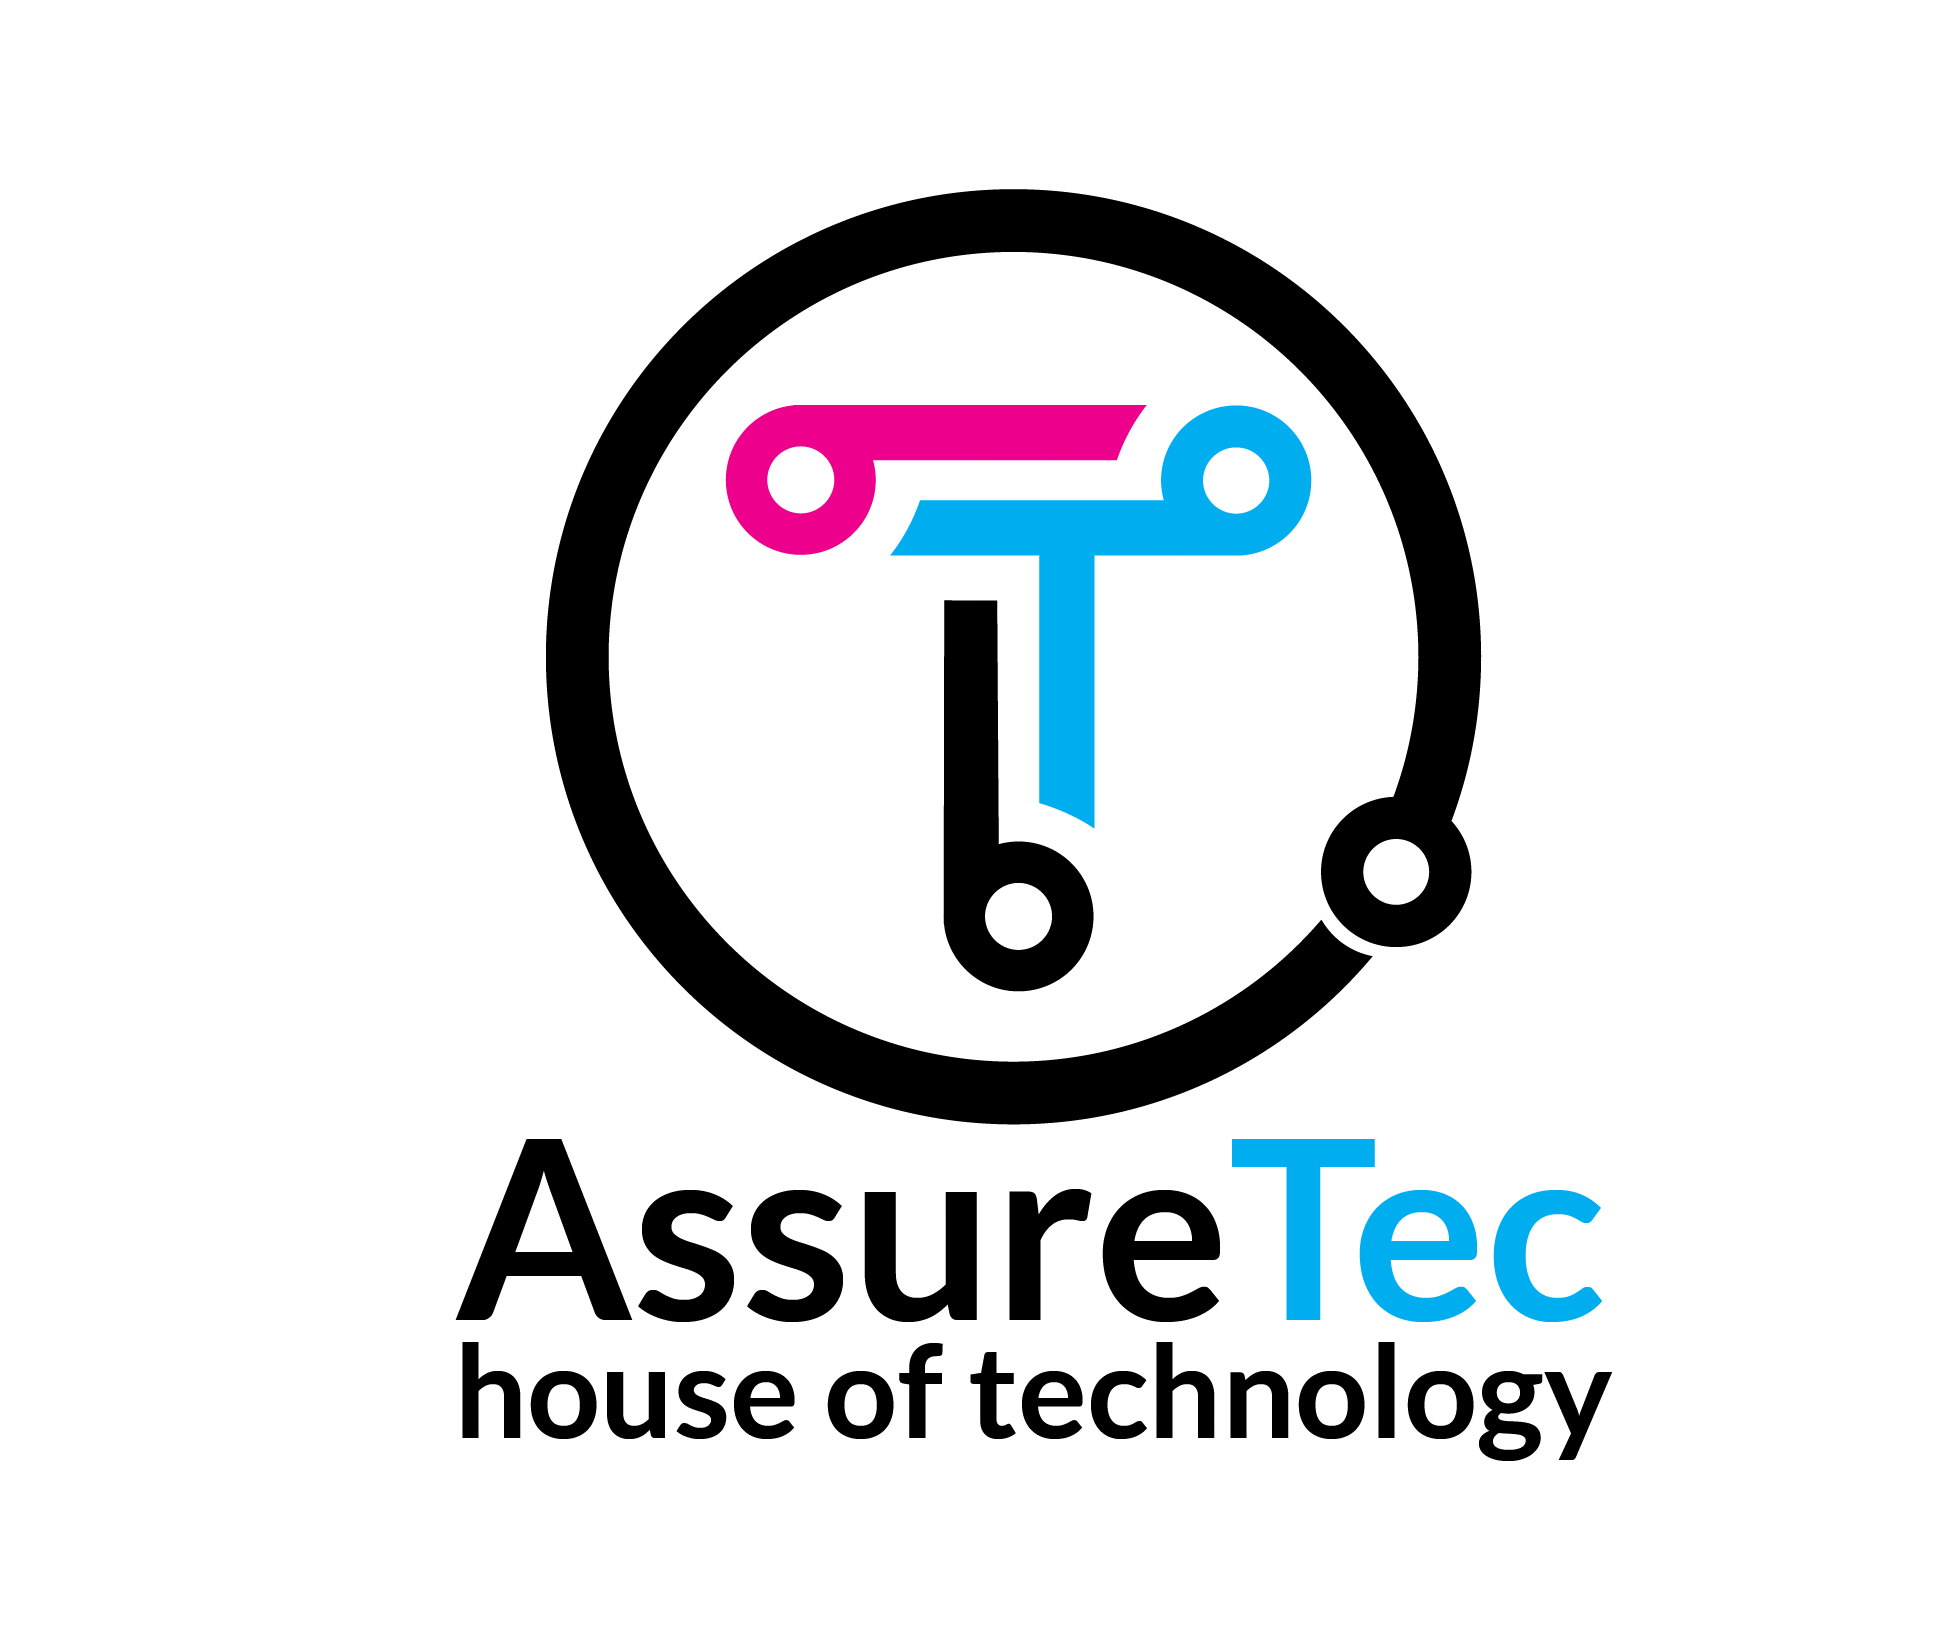 Assuretec (T) limited